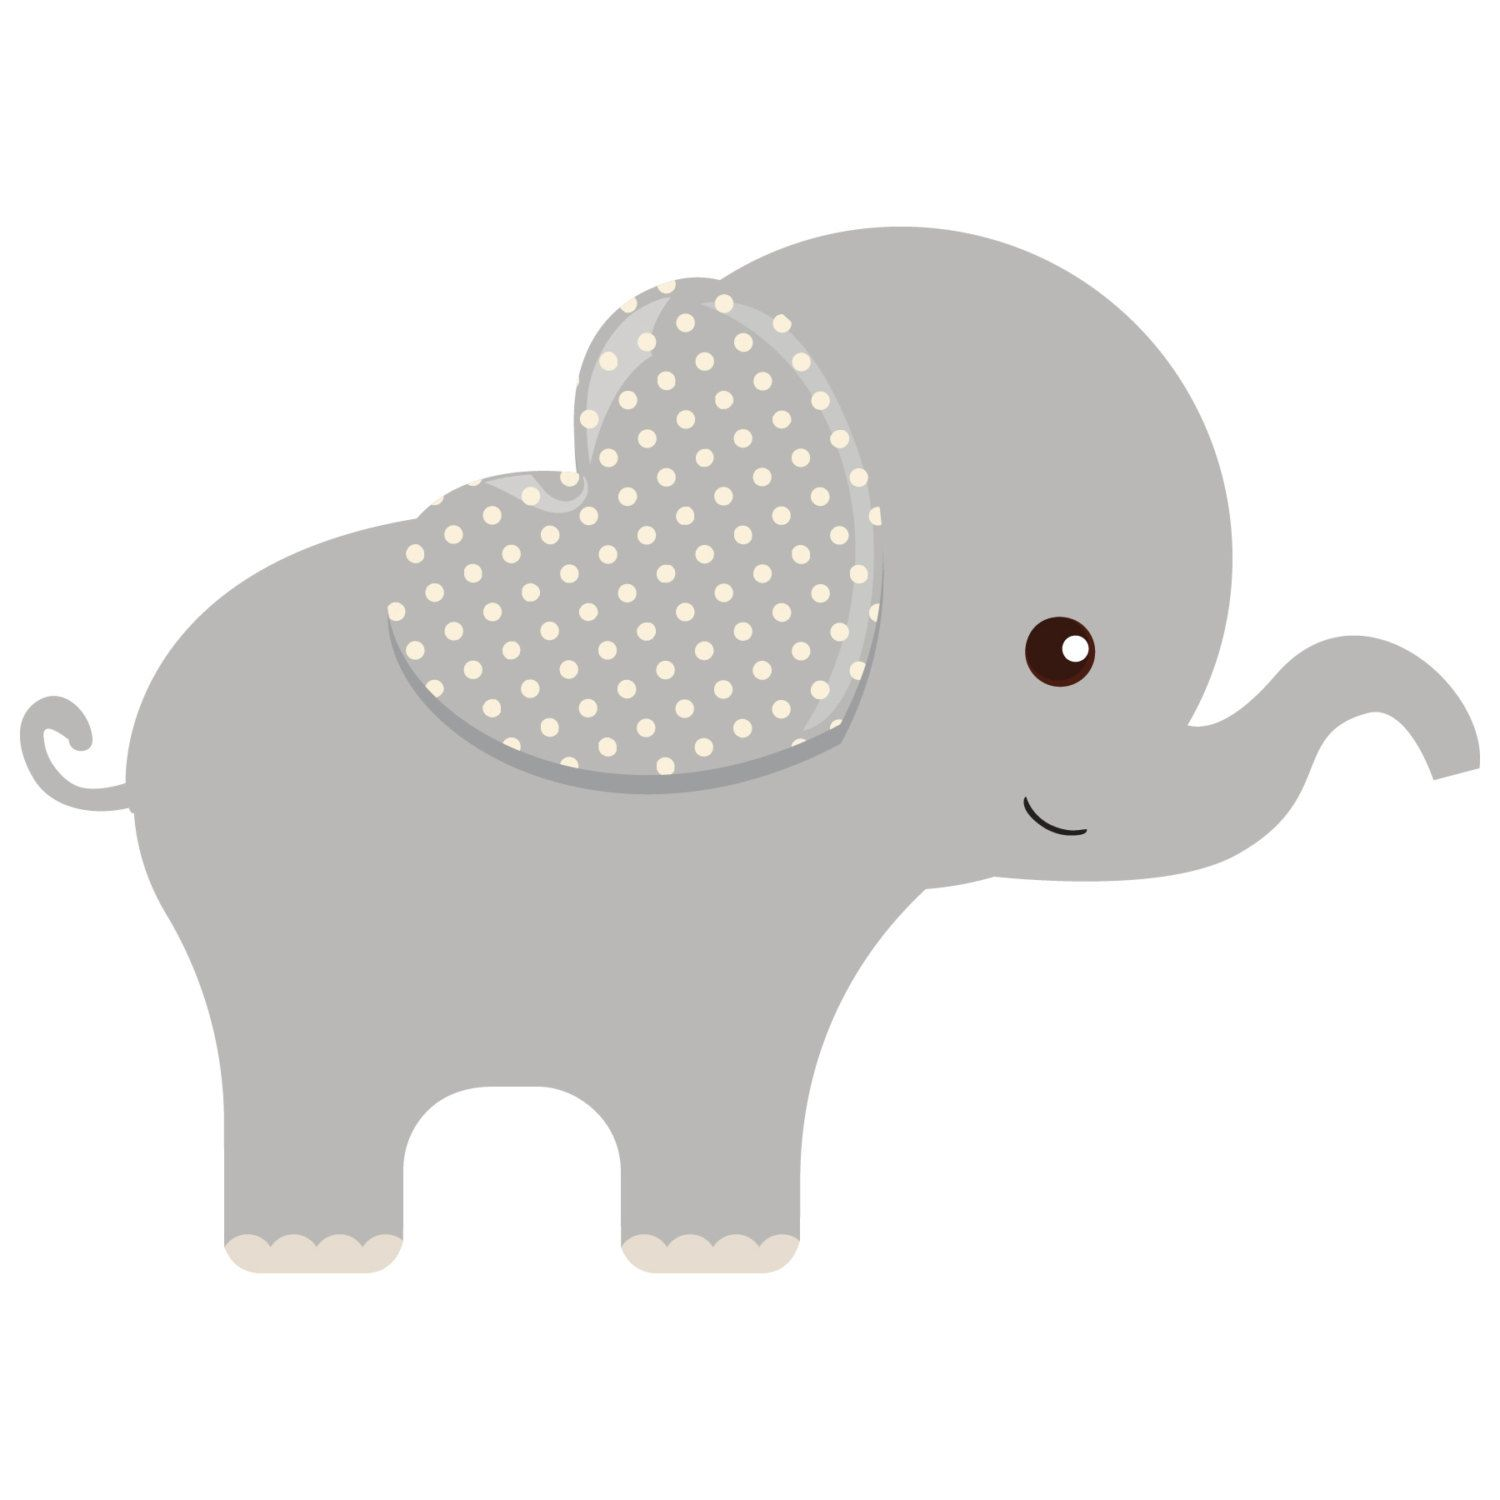 Elephant clipart baby shower. Image result for silhouette